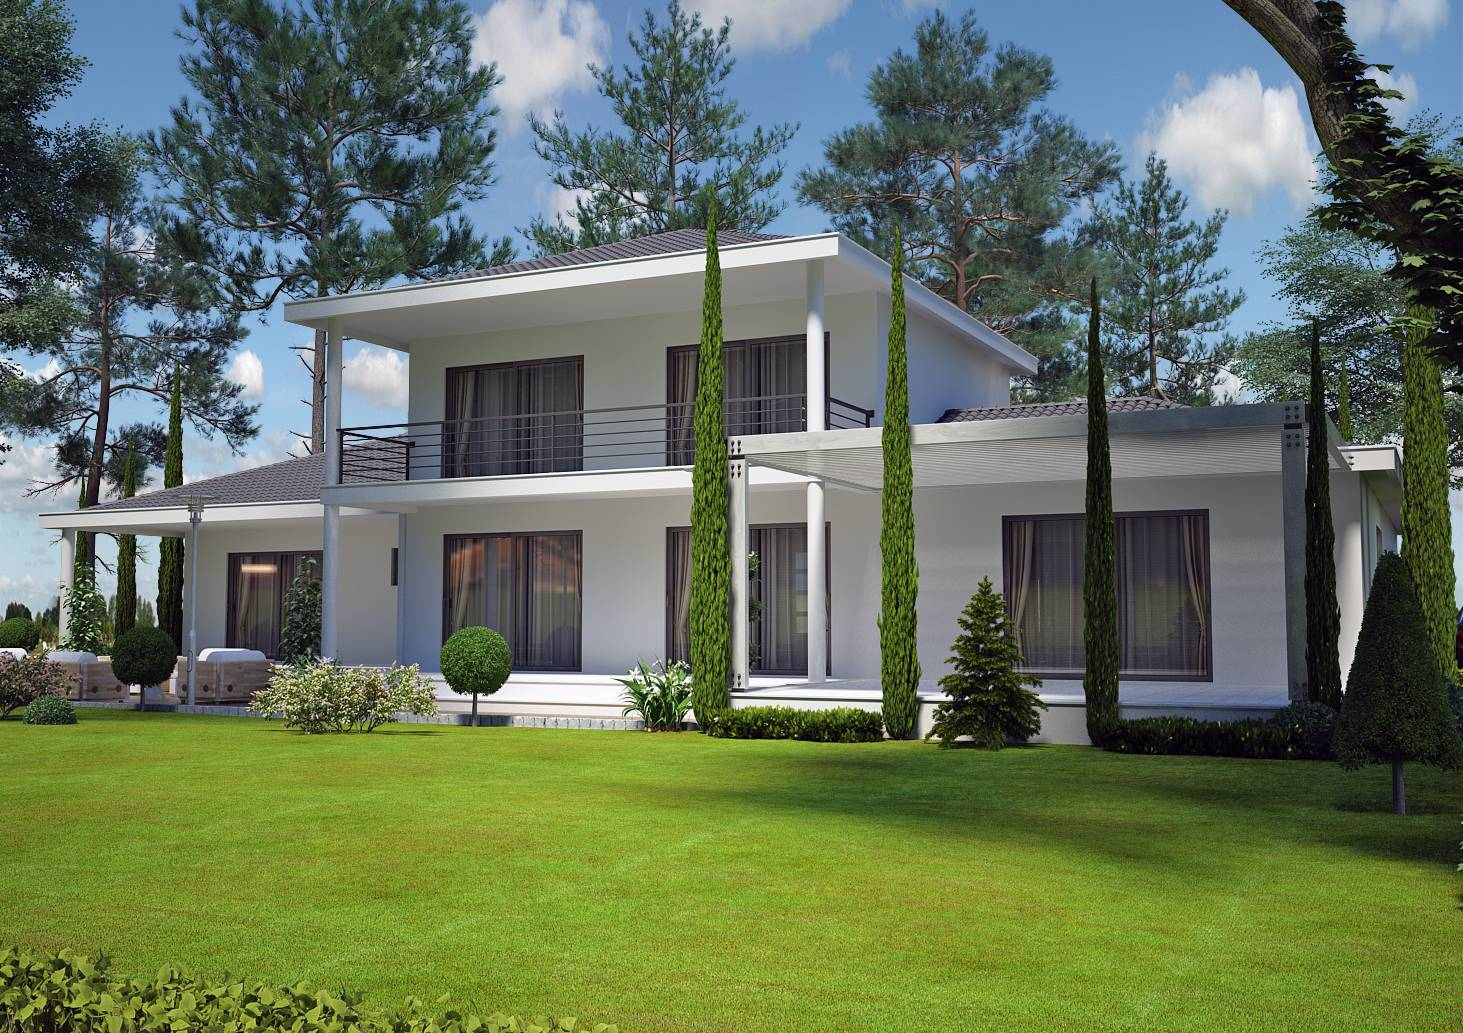 Villa contemporaine 150 m2 etage mod le pinede salon for Exemple de maison moderne